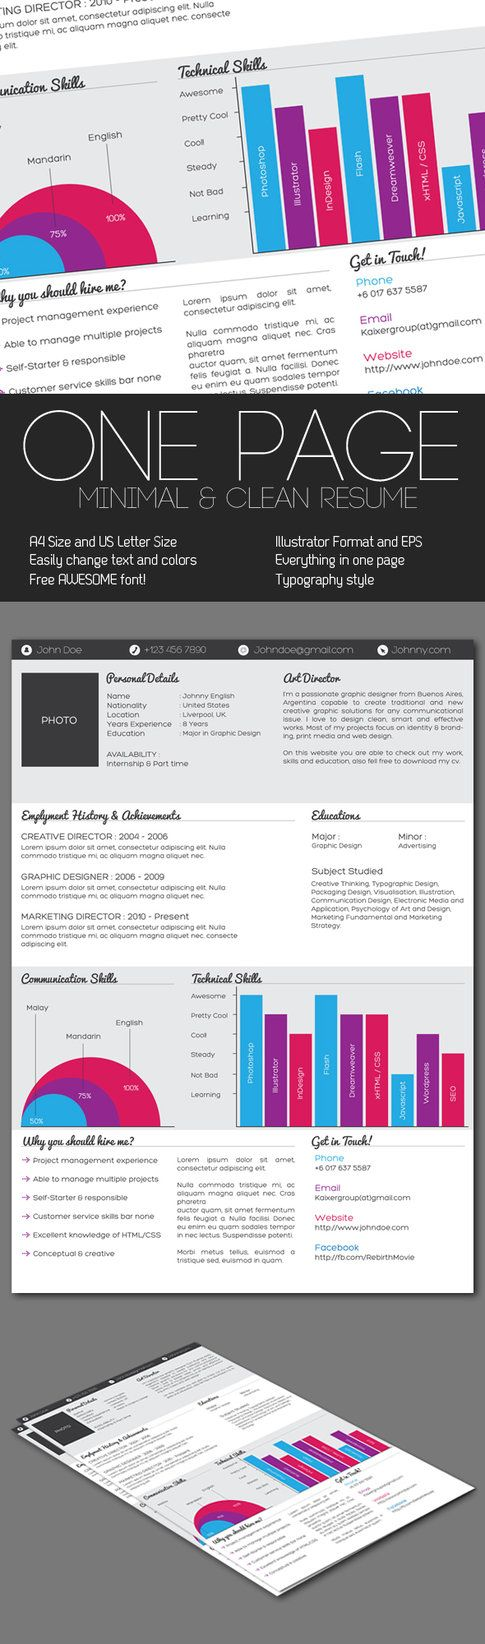 Clean One Page Resume By Kaixergroup On Deviantart  Infographic